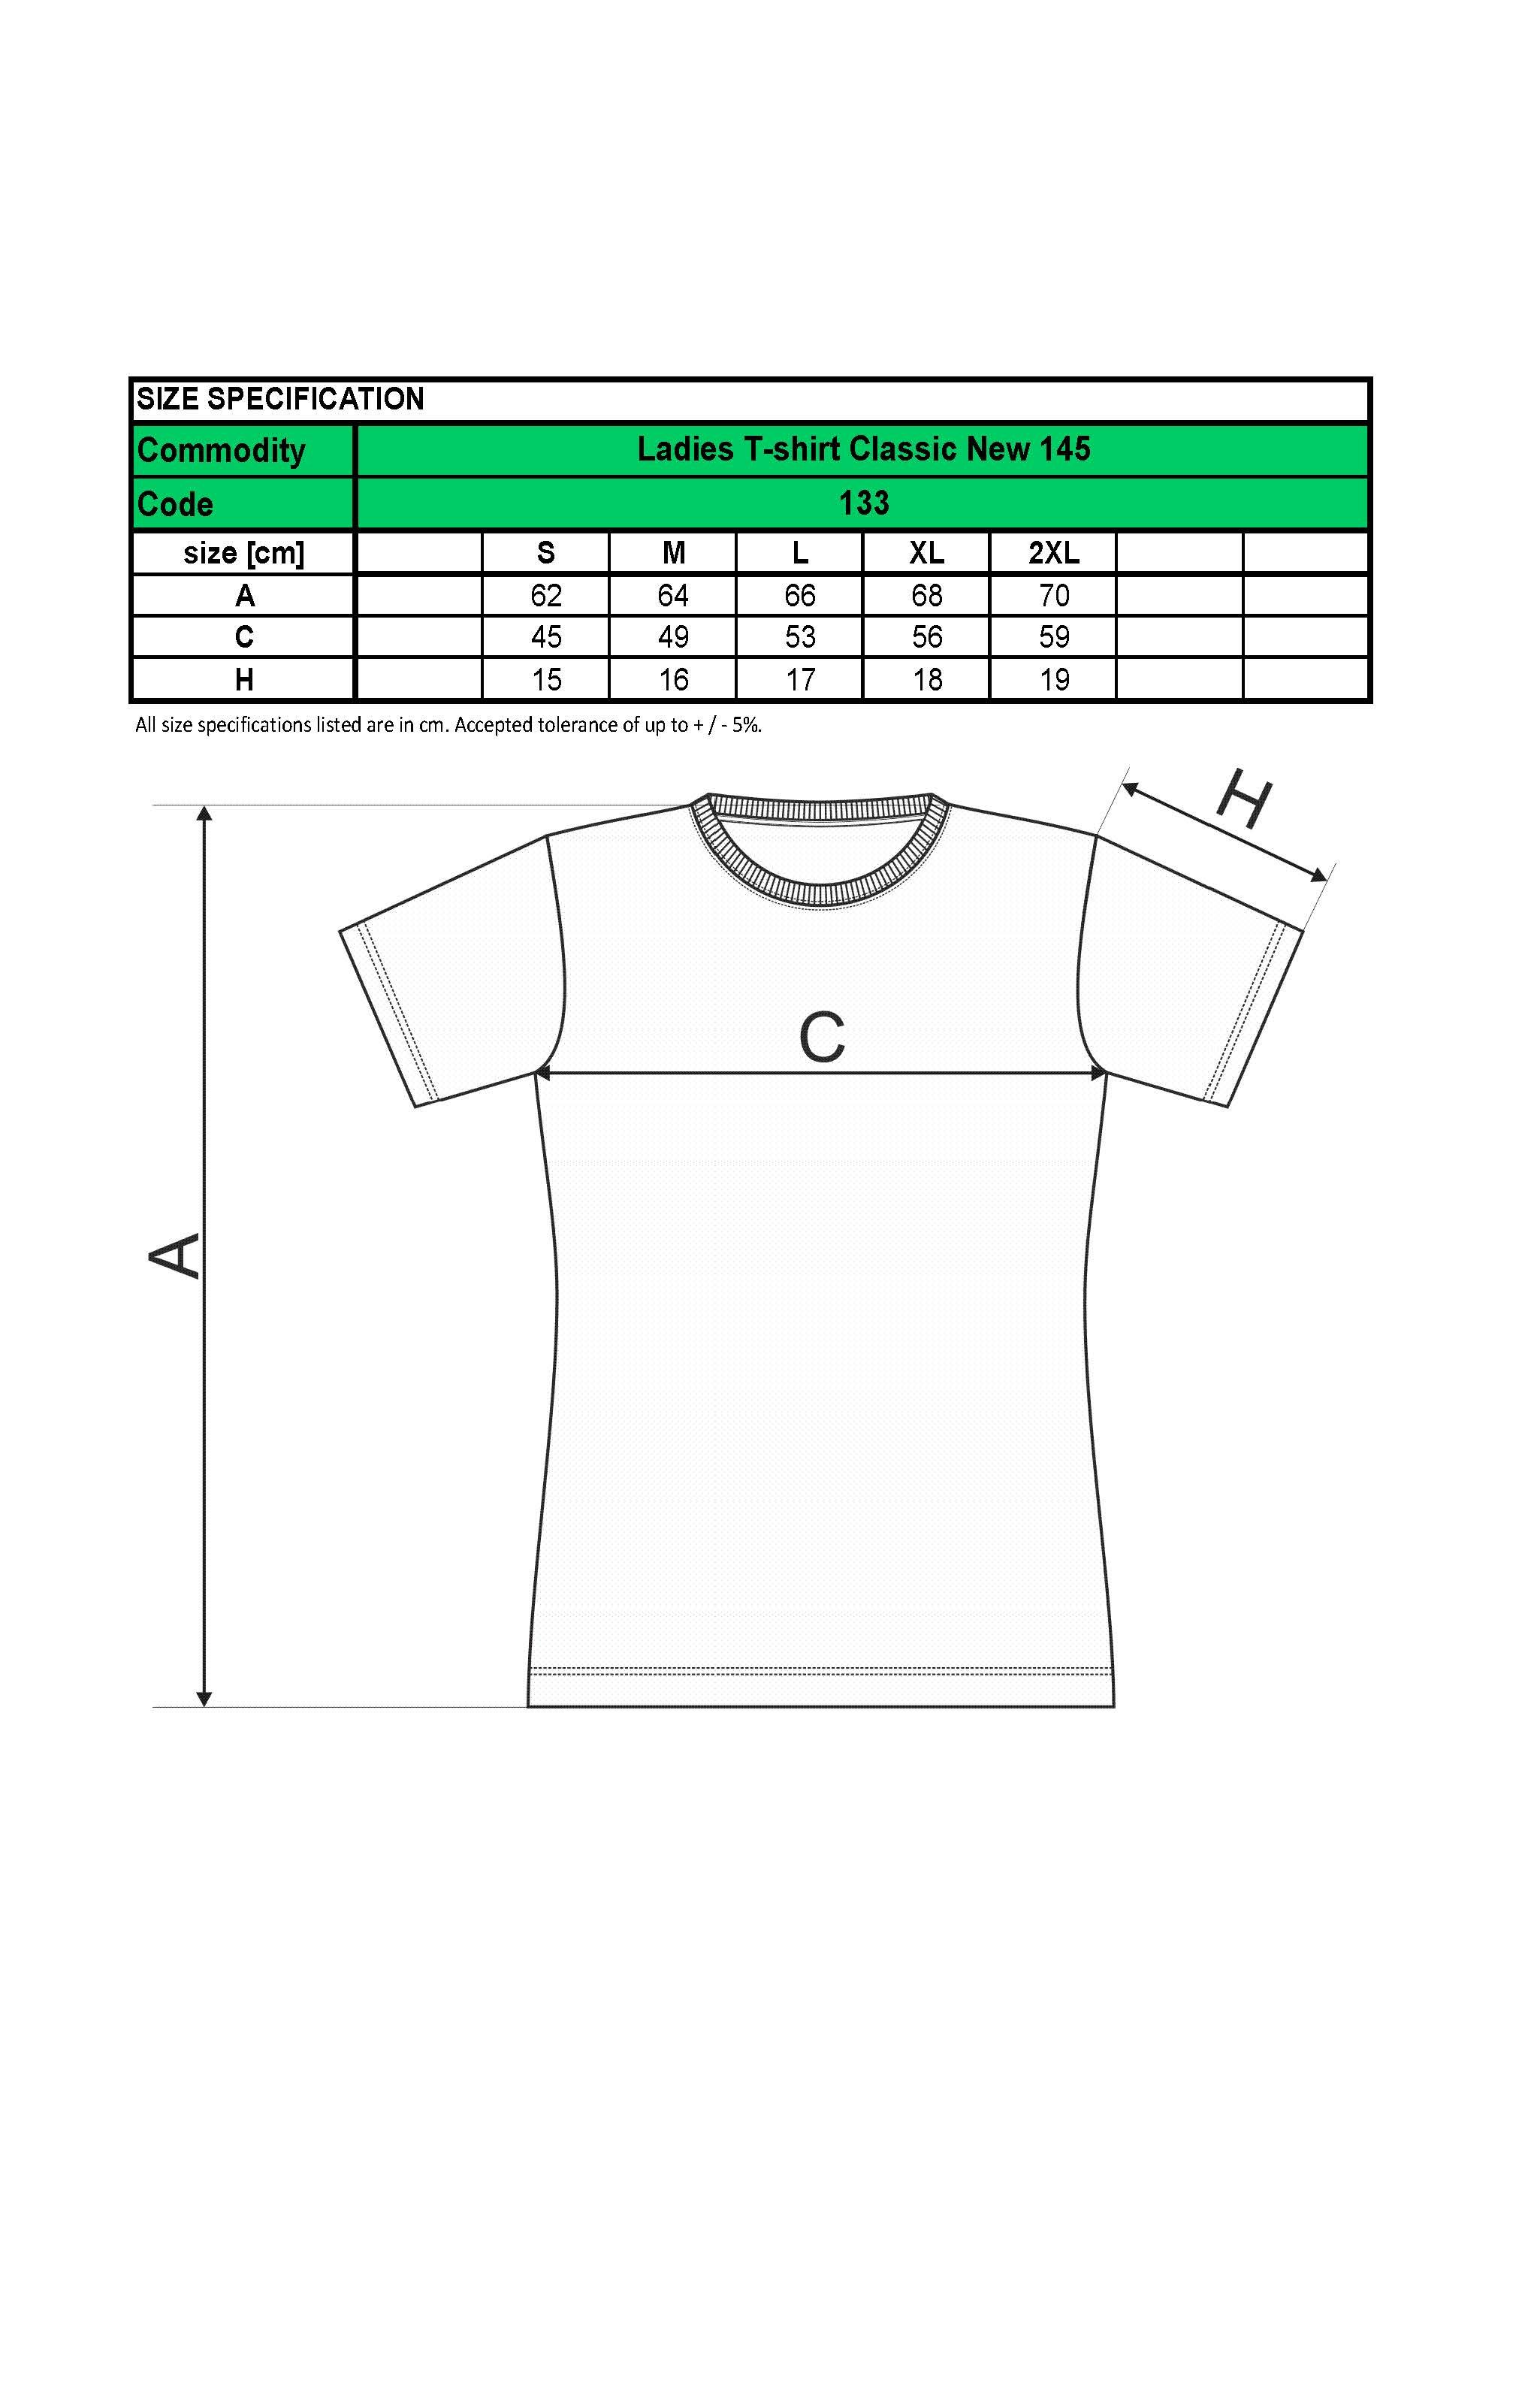 Custom Printed Embroidered Promotional white Ladies T-Shirts 133 size chart www.ontimeprint.co.uk